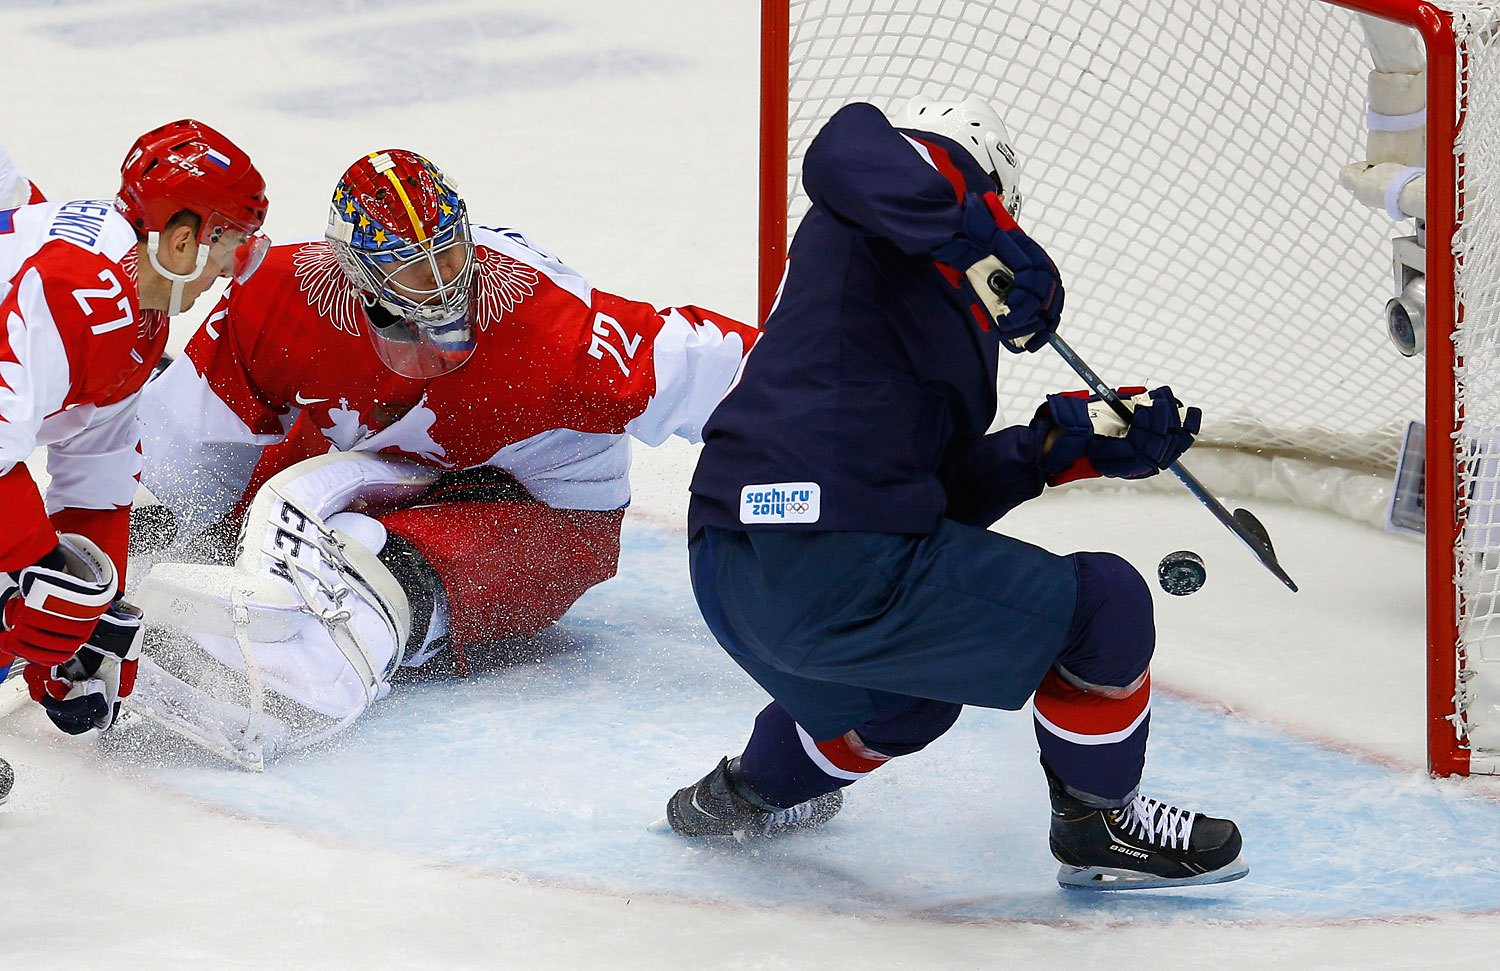 Team USA's Cam Fowler, right, scores on Russia's goalie Sergei Bobrovski and Russia's Alexei Tereshenko during the second period of their men's preliminary round ice hockey game.